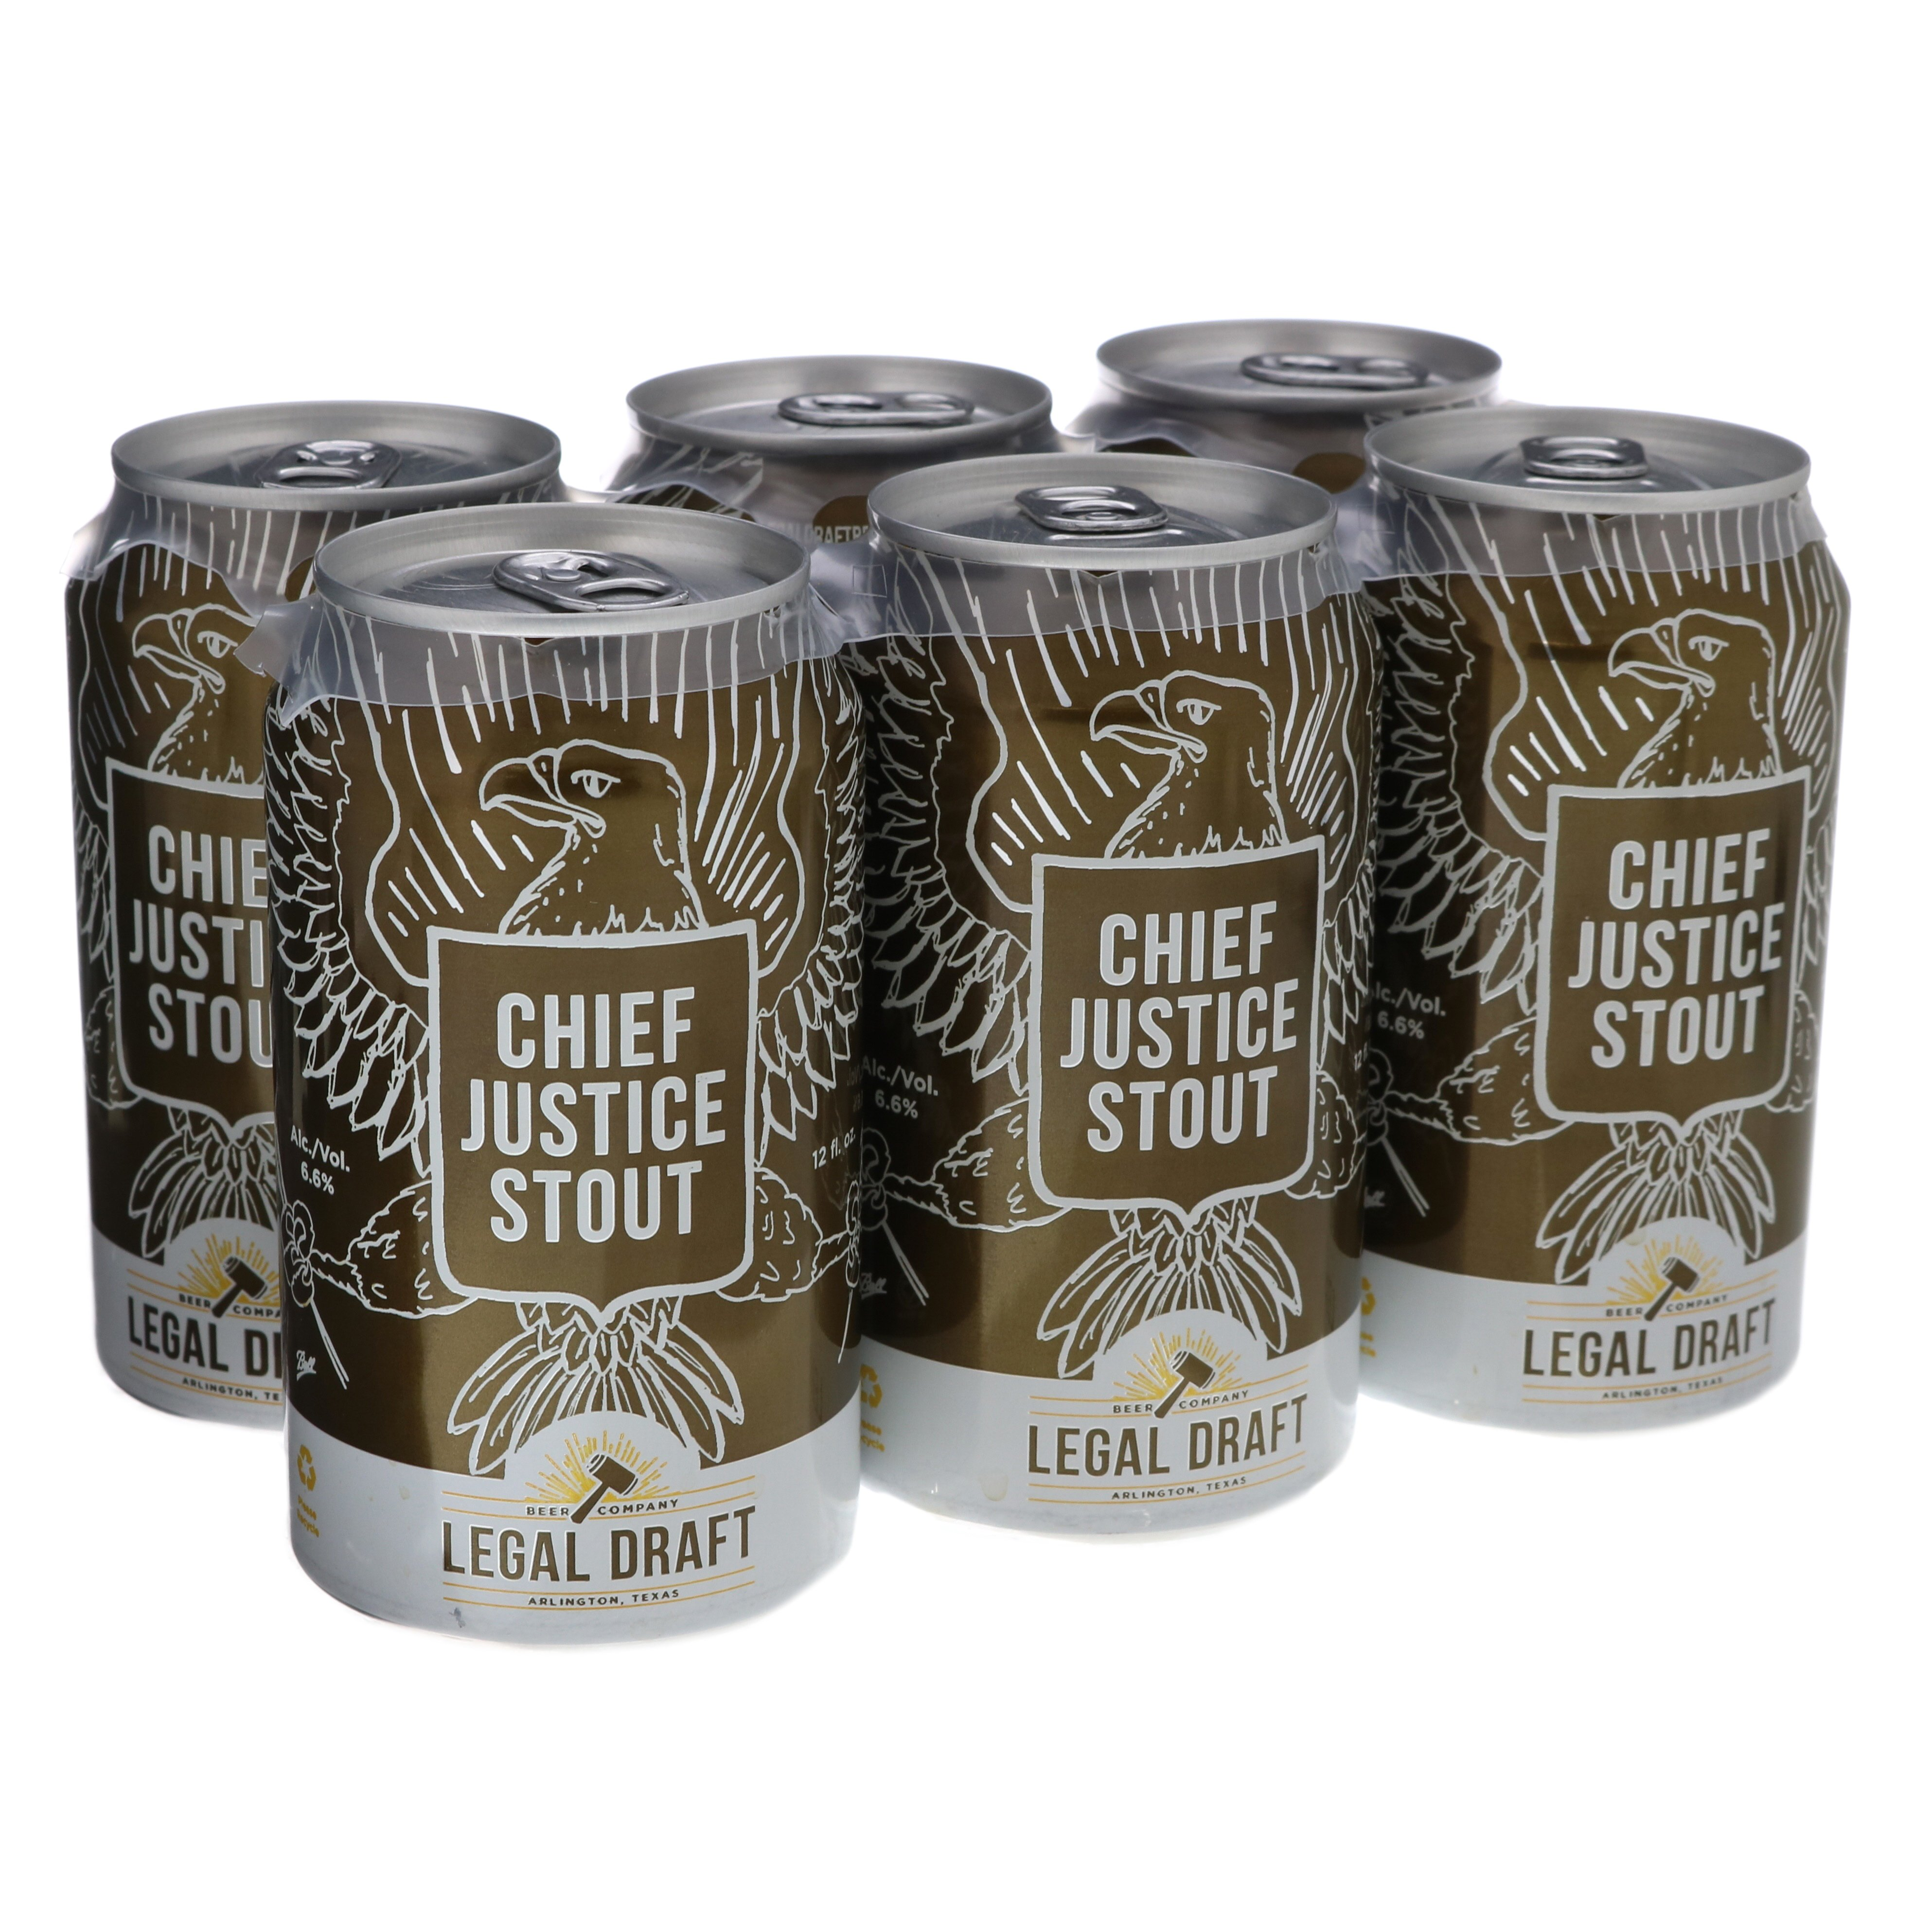 legal draft chief justice stout beer 12 oz cans shop beer at h e b